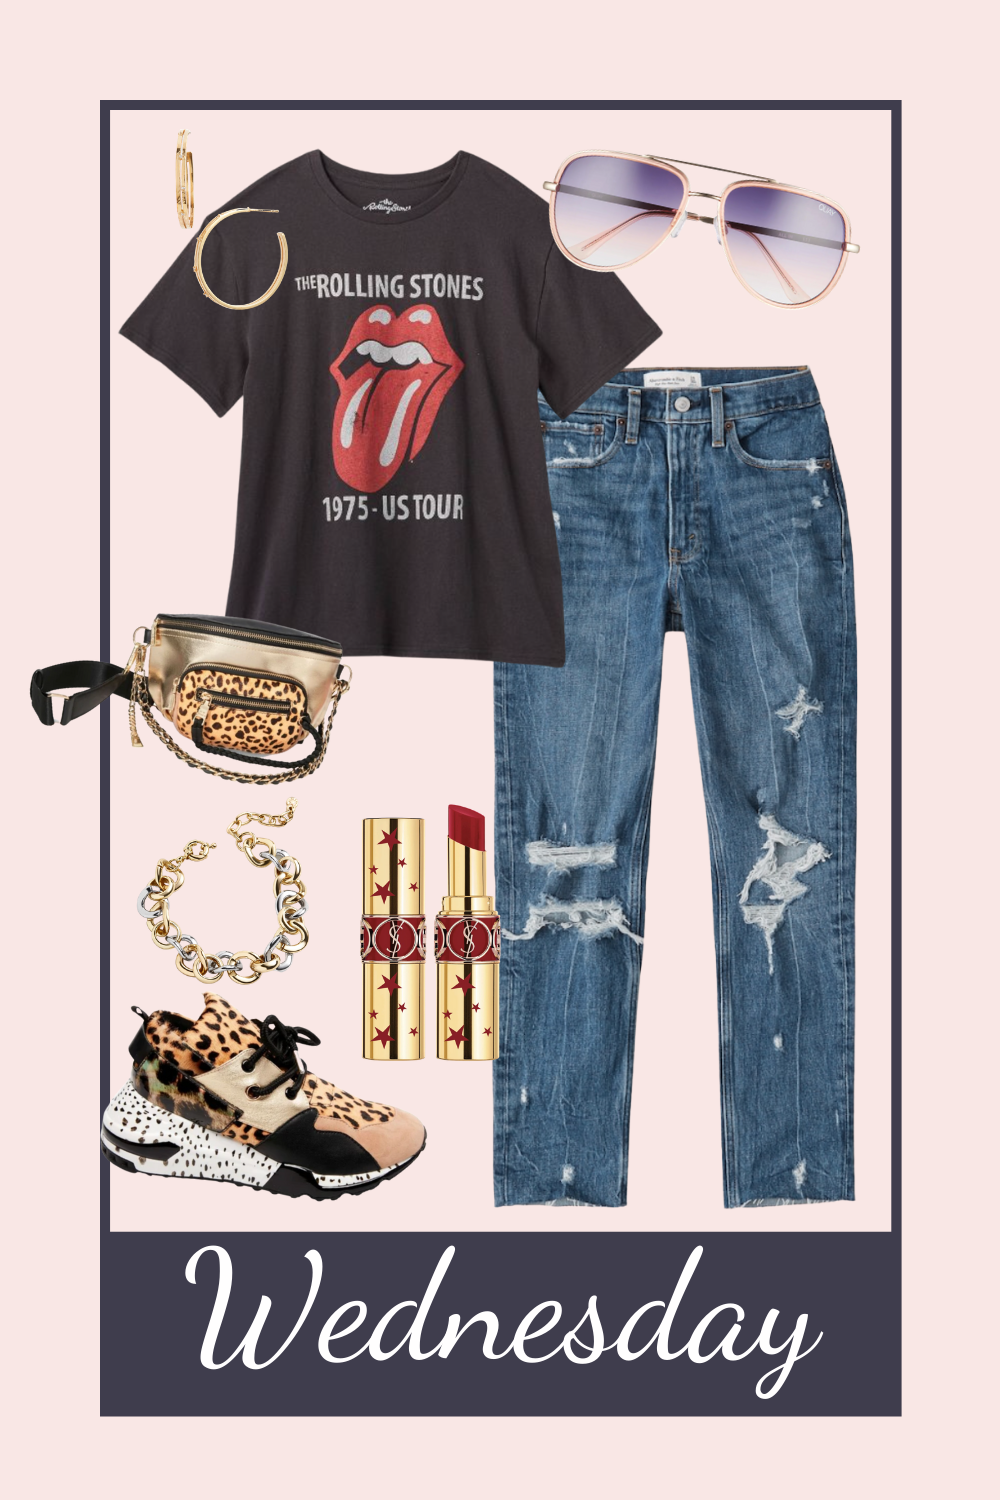 graphic tees for women. target mom. target takes all my money. animal print fashion sneakers. mom jeans